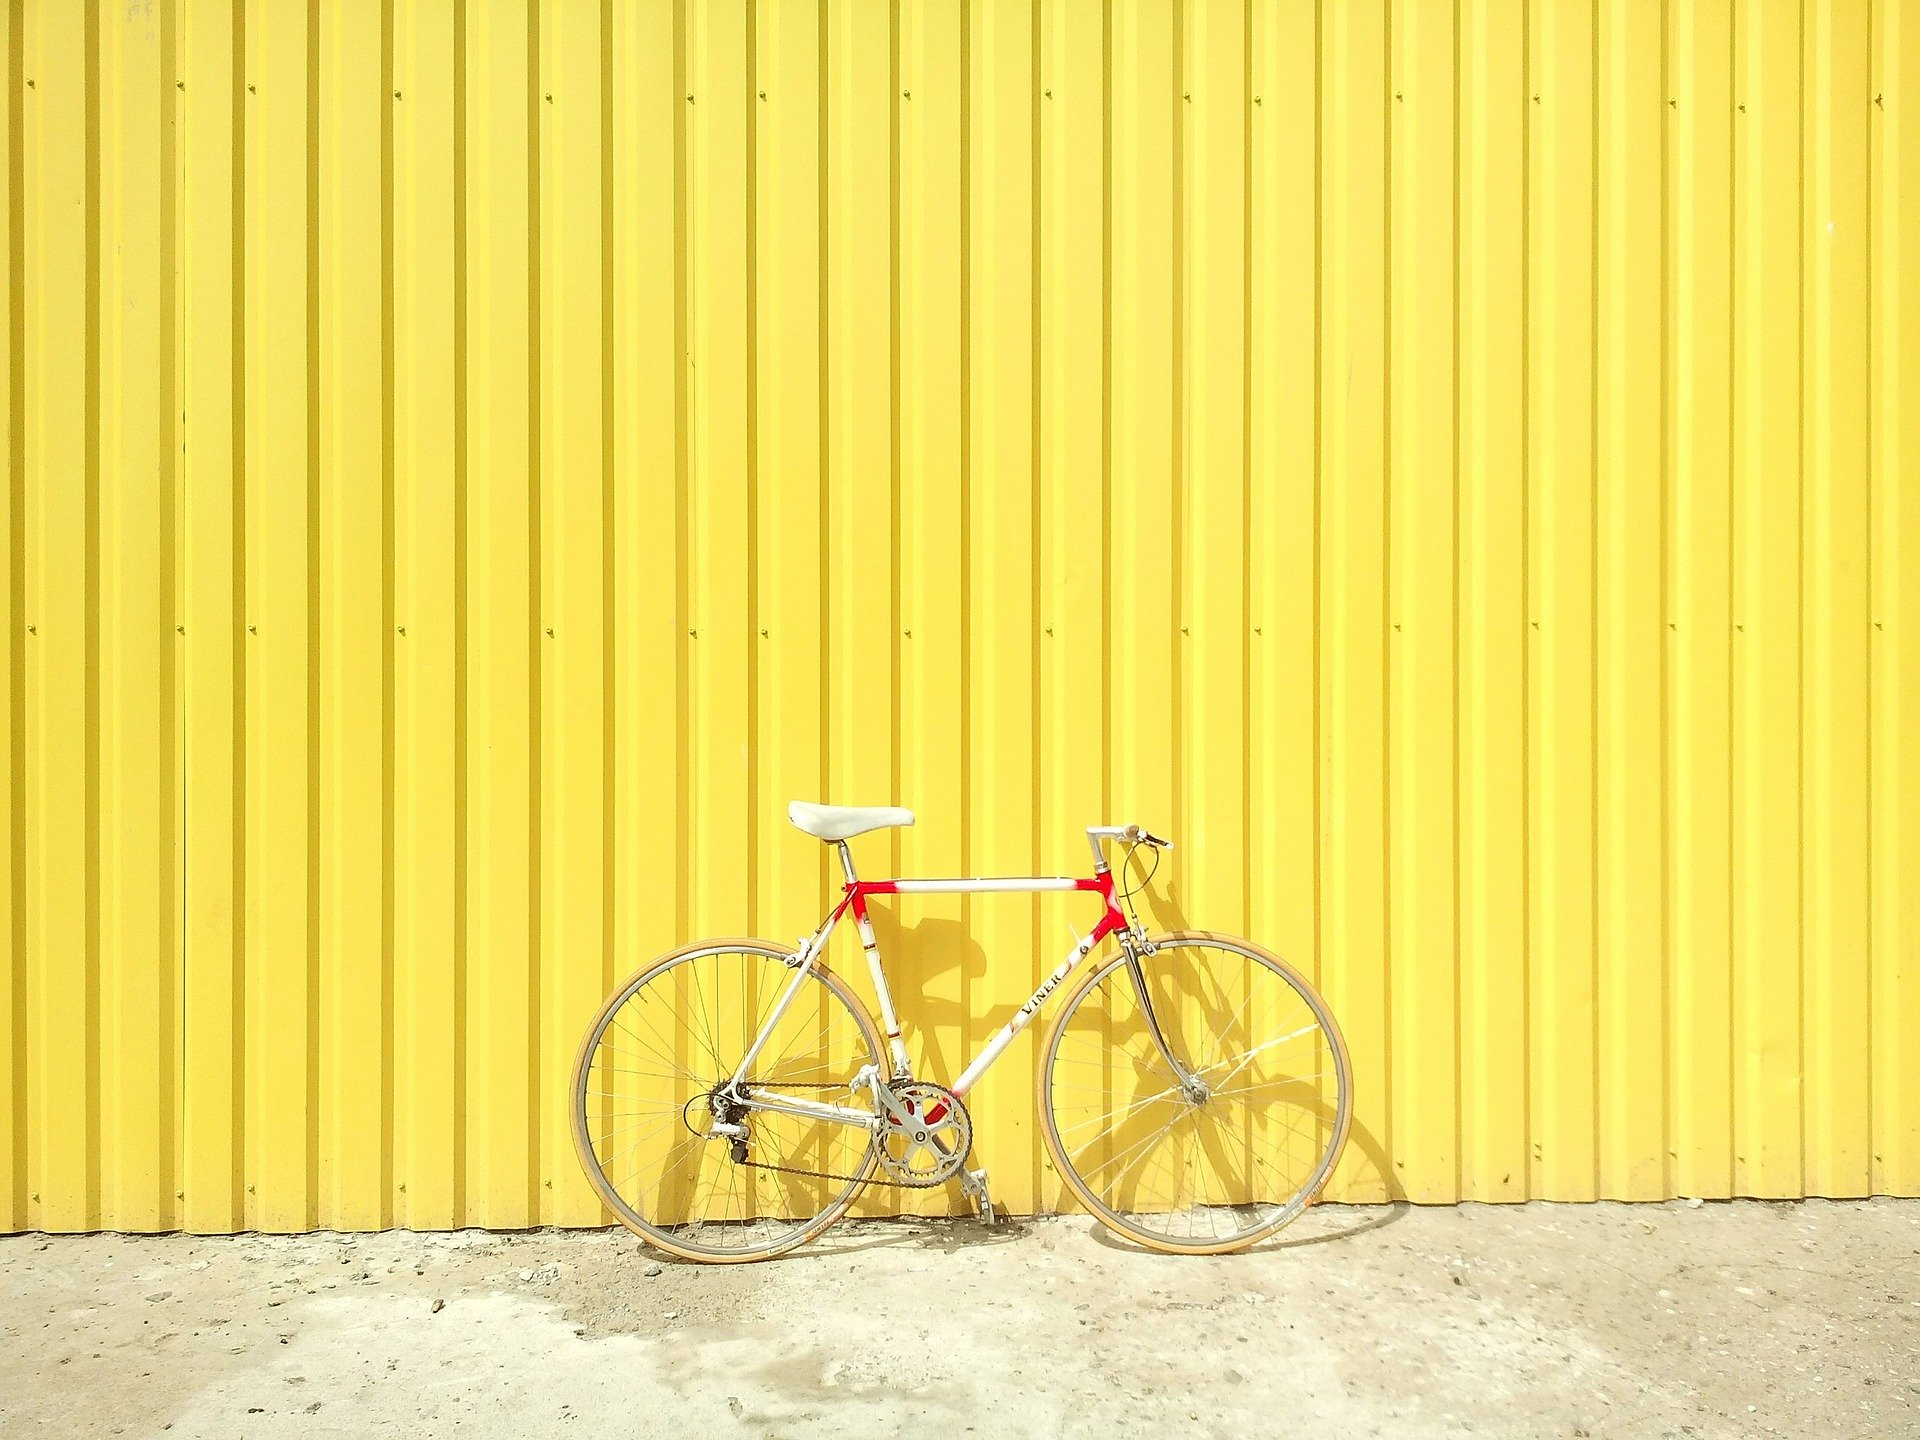 Funding for Cycling Equipment and Facilities in England